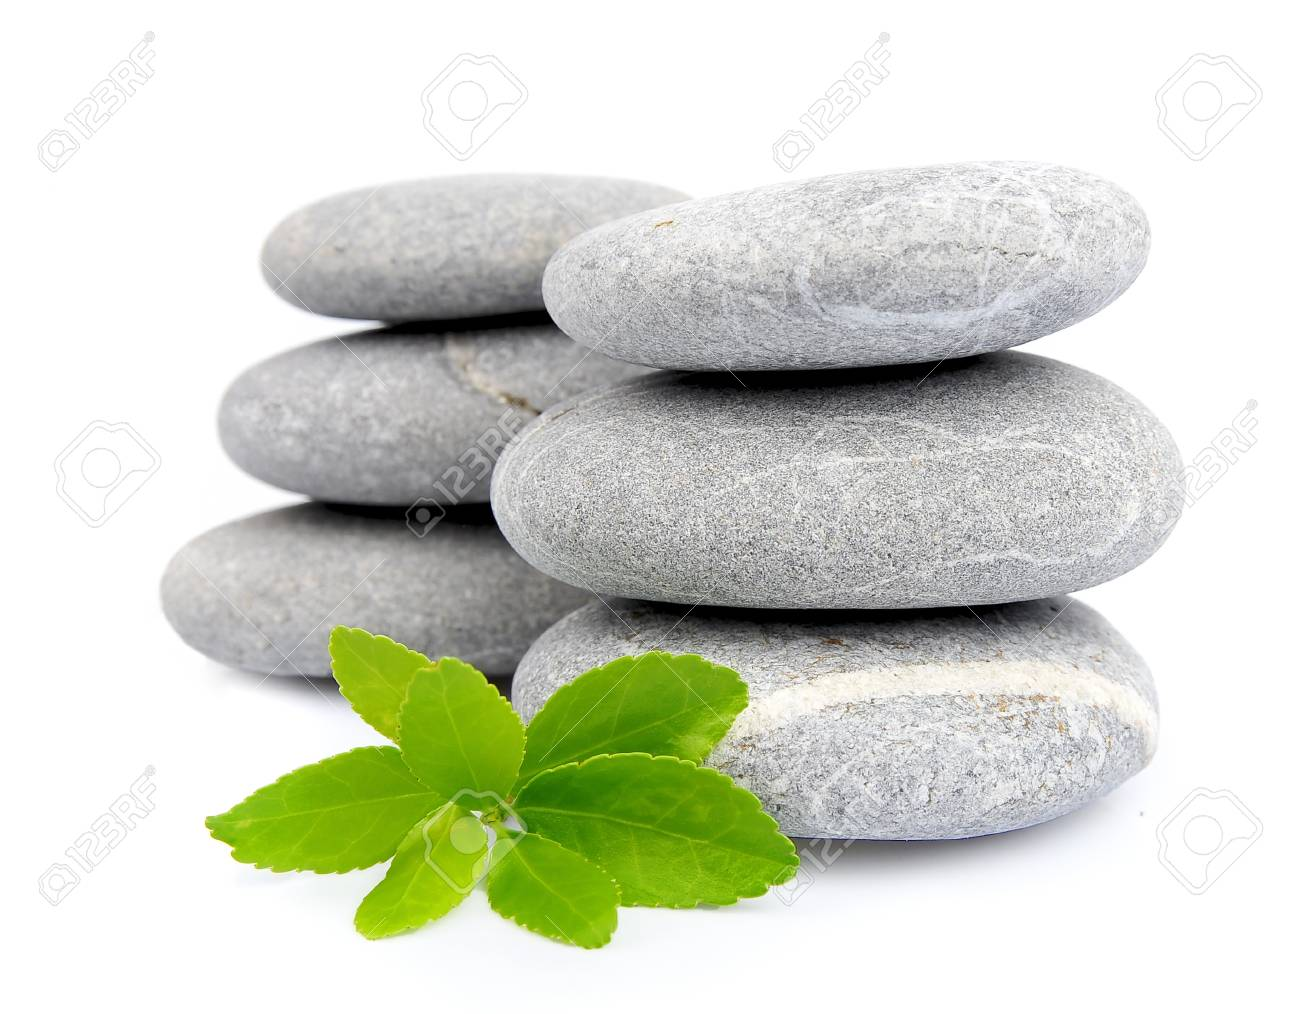 Zen Stones With Leafs On White Close Up Stock Photo Picture And Royalty Free Image Image 16530346